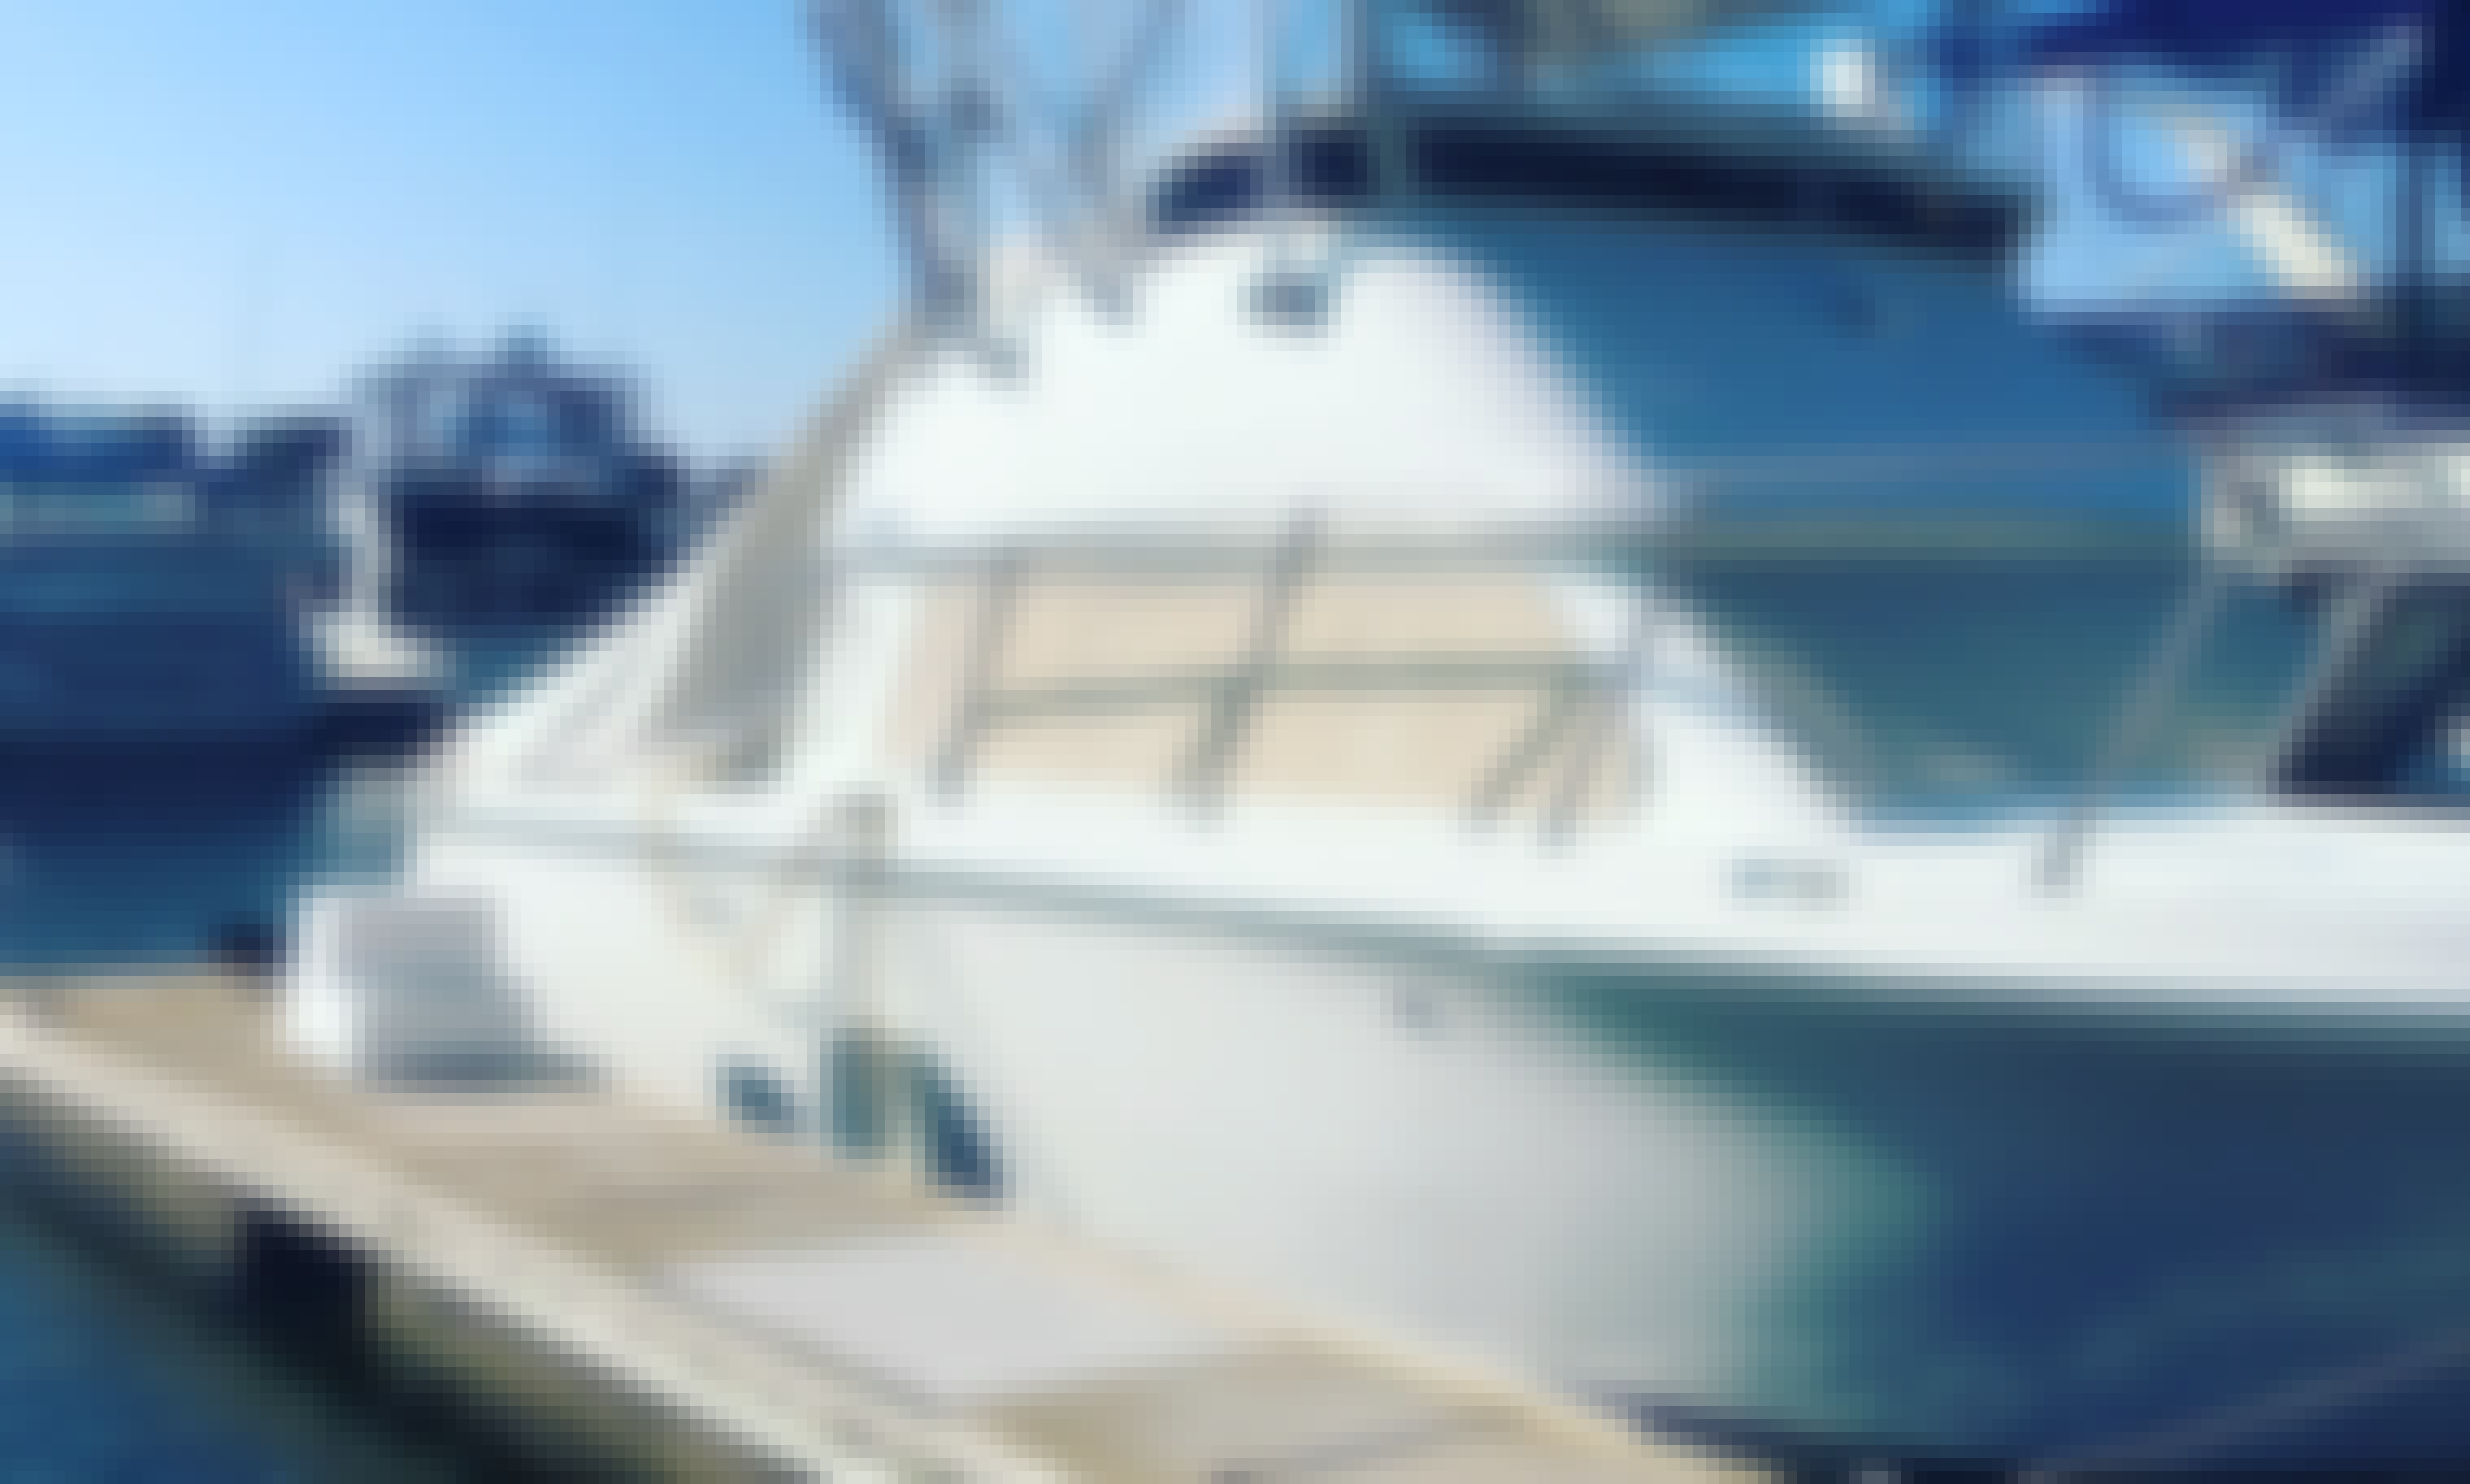 Captained Motor Yacht Charter For 6 People in Huntington Beach, California